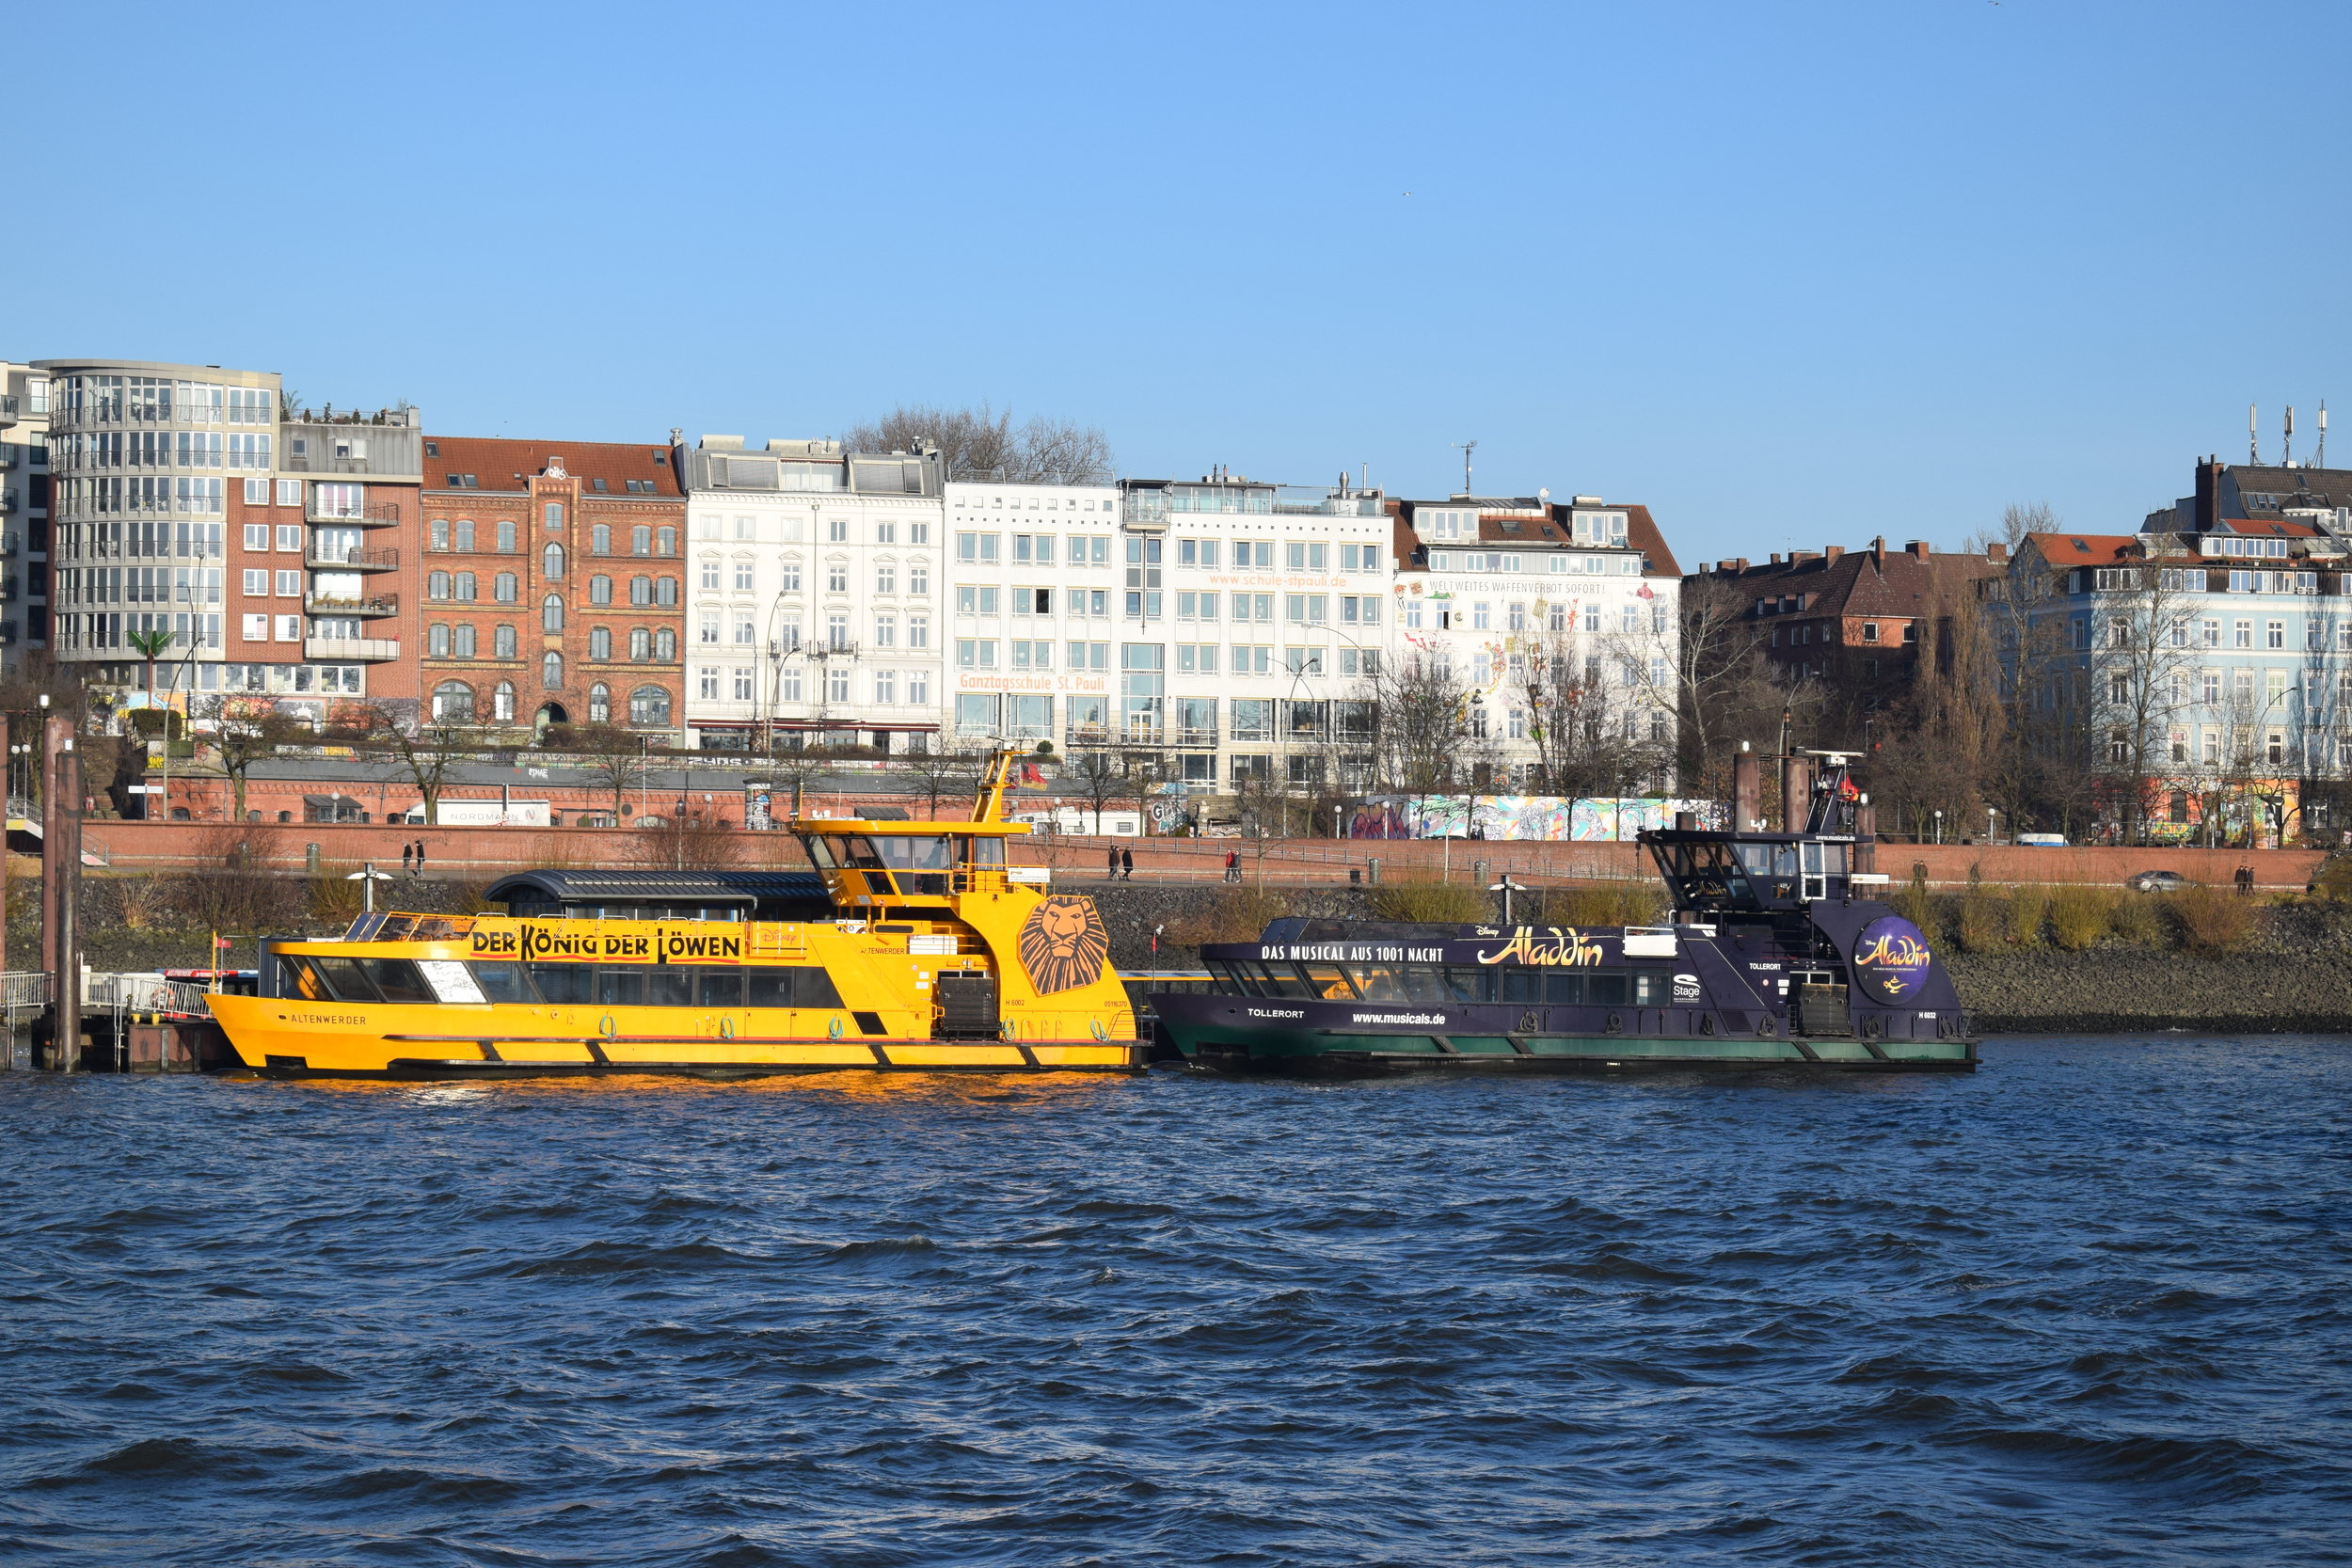 Theatre is a big deal in Hamburg, and some boats are adorned with musical advertisements.